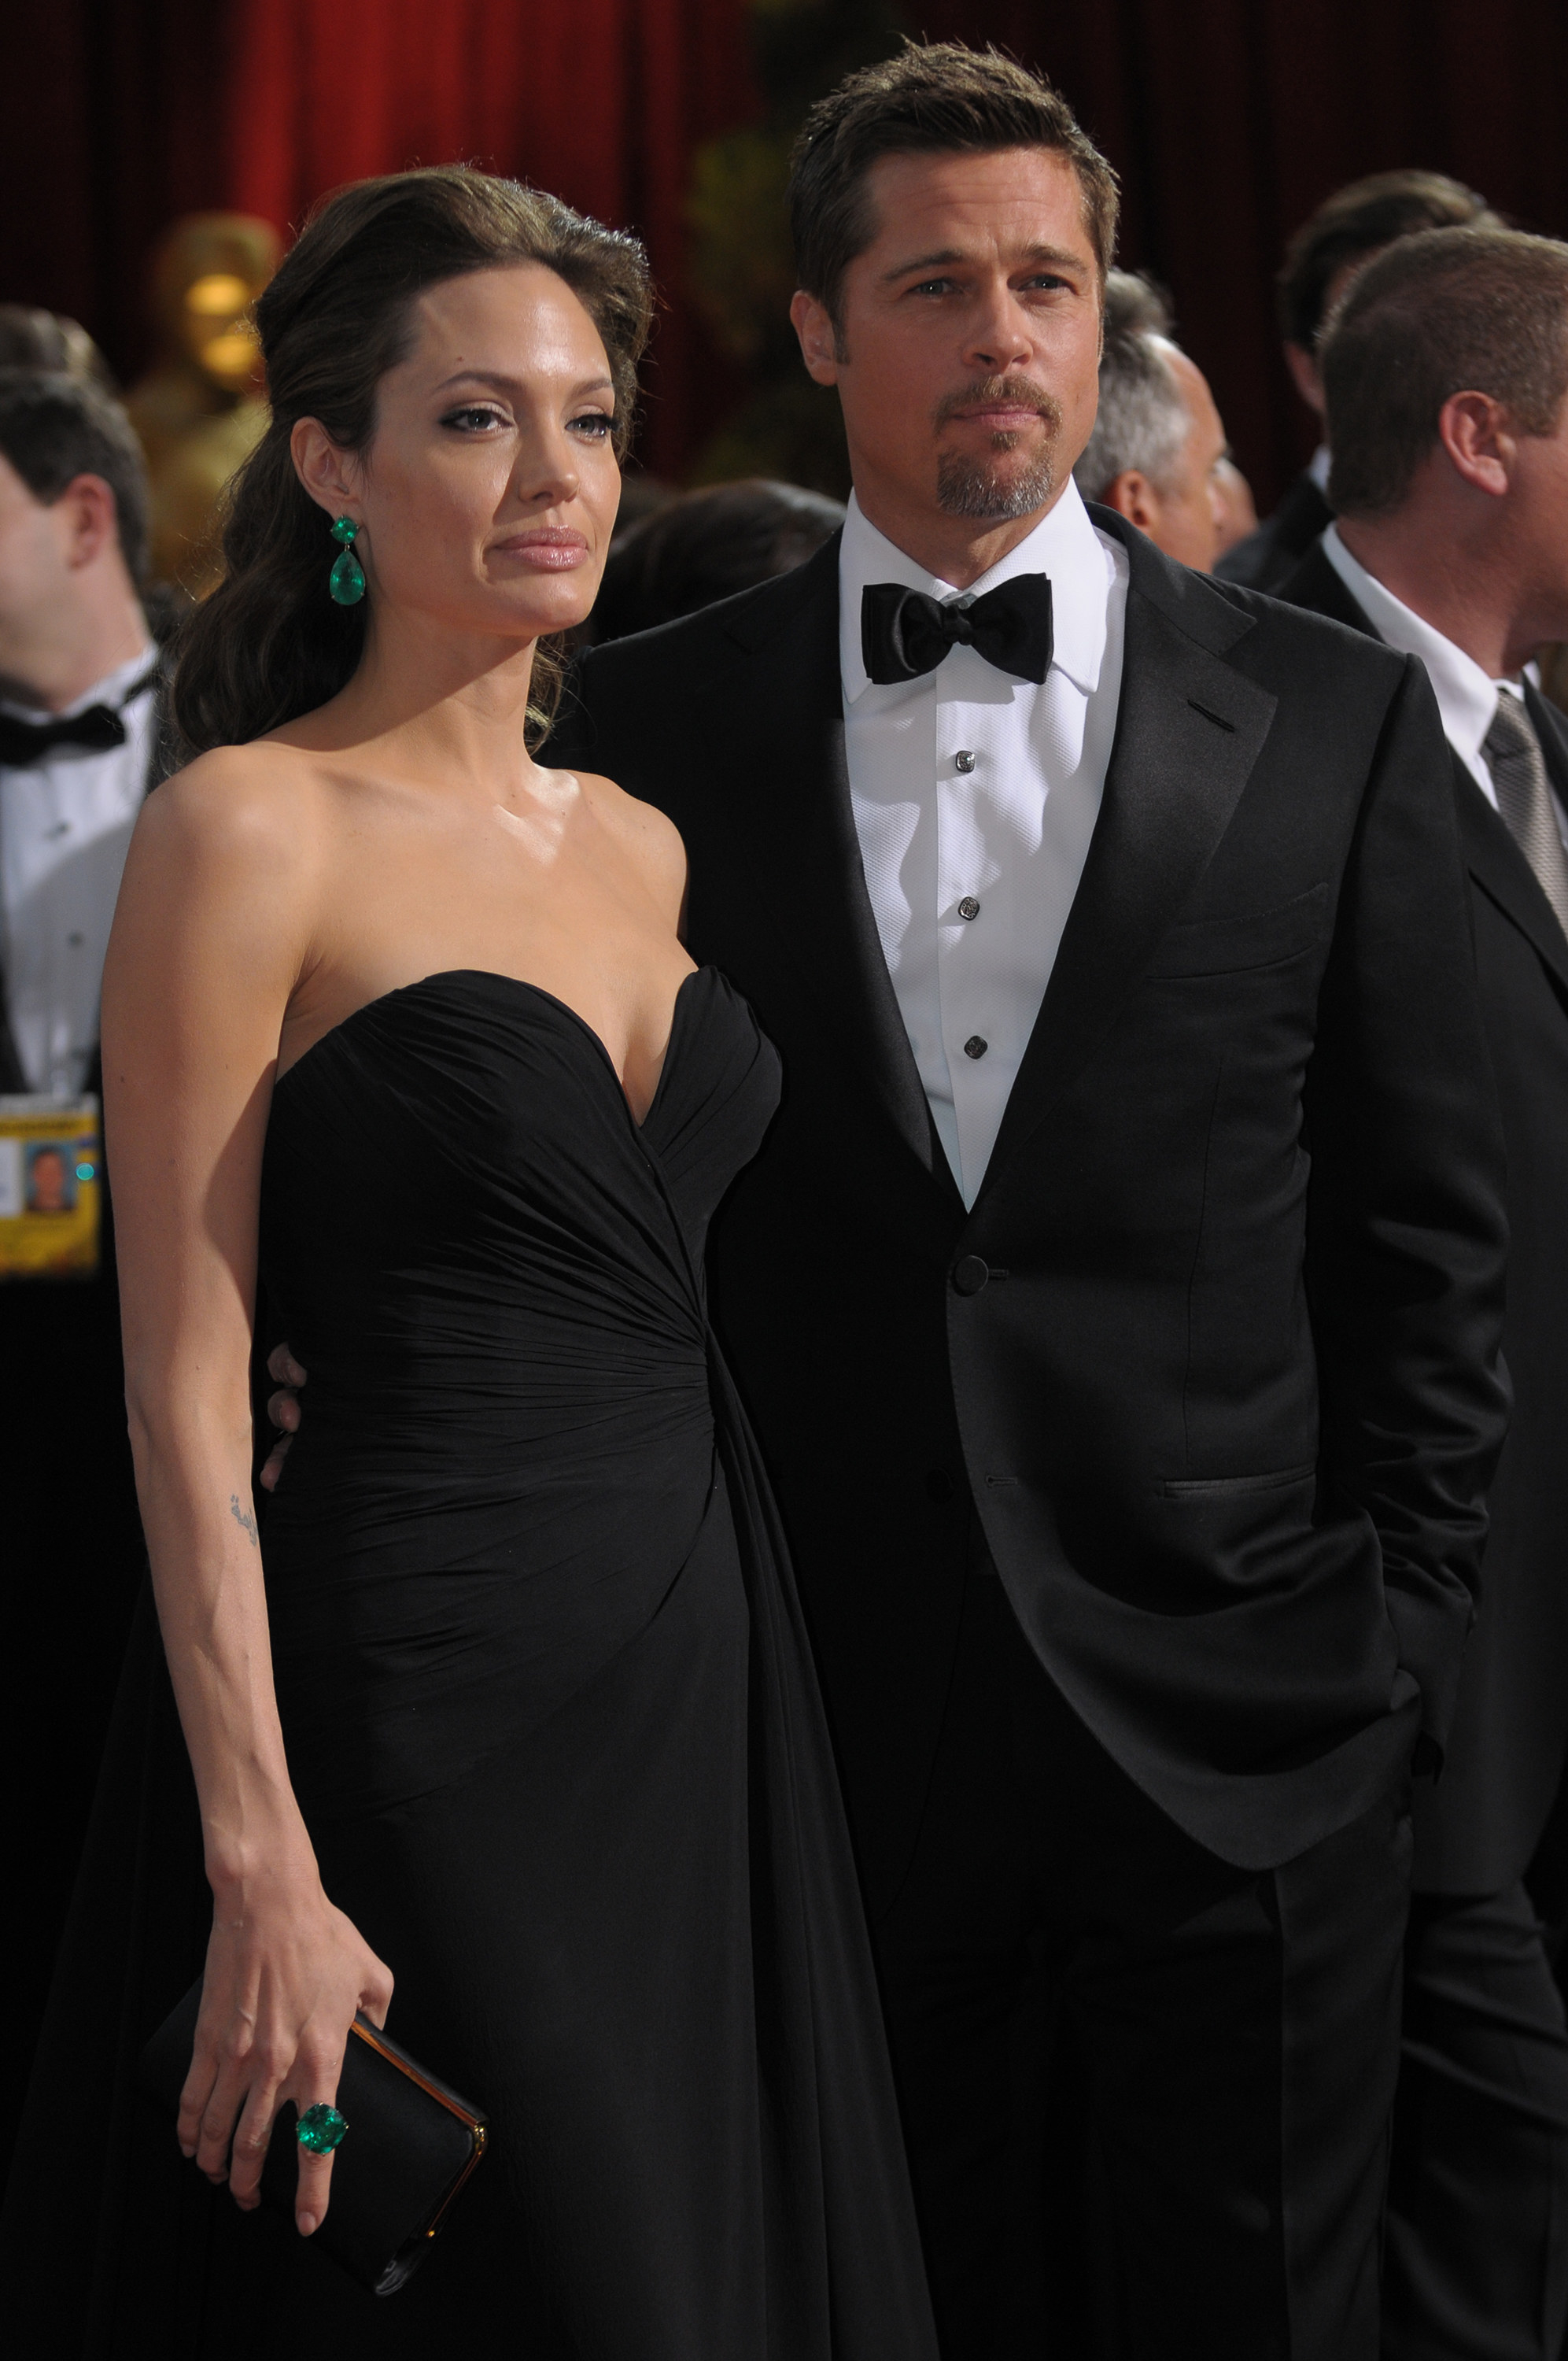 Angelina Jolie and Brad Pitt at a red carpet event